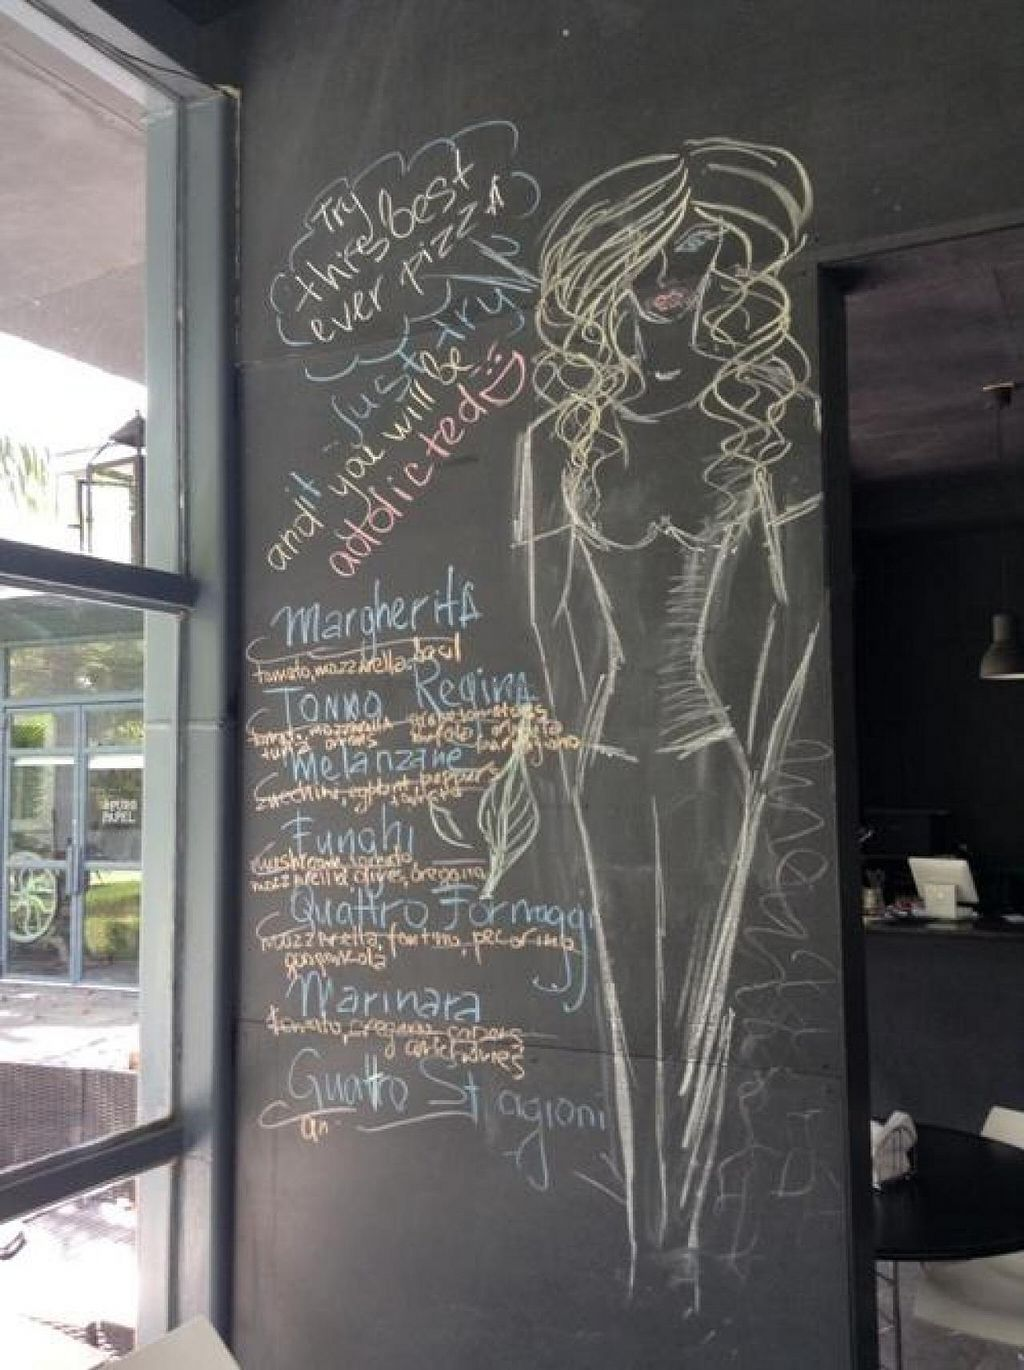 """Photo of Iron Side Pittzza  by <a href=""""/members/profile/Julie%20R"""">Julie R</a> <br/>The chalkboard menu <br/> April 20, 2014  - <a href='/contact/abuse/image/44947/68107'>Report</a>"""